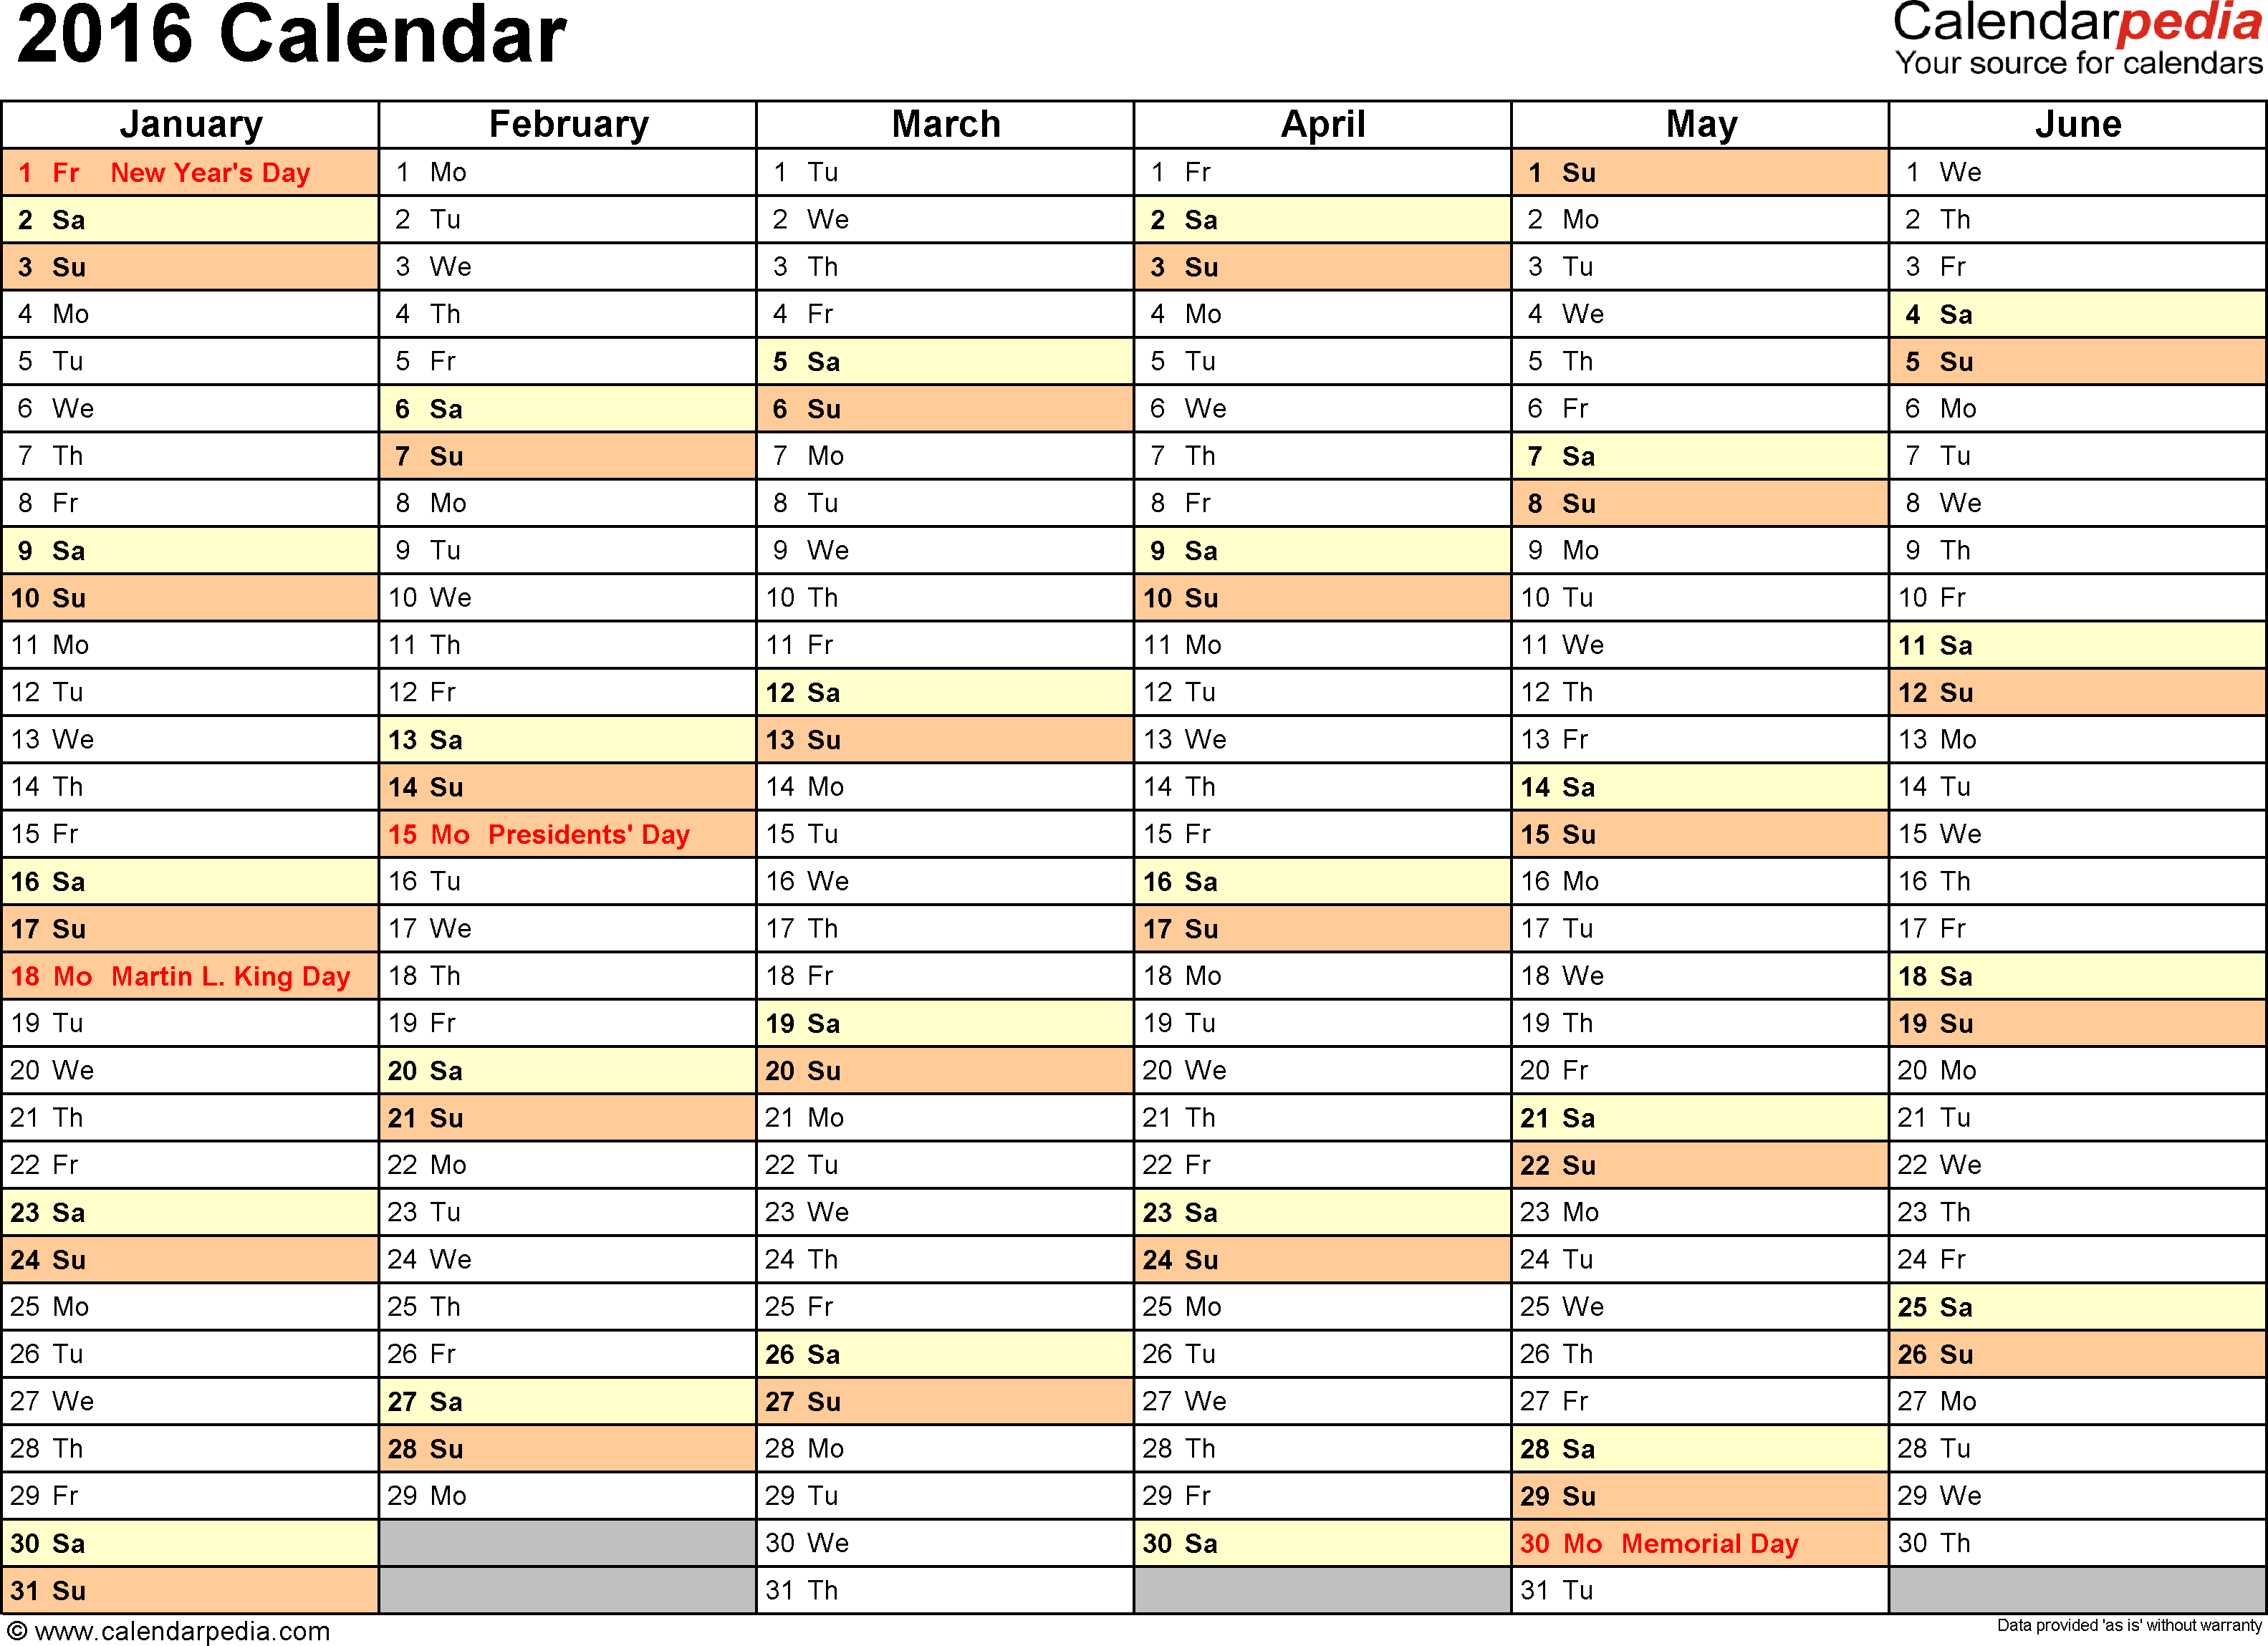 Ediblewildsus  Unique  Calendar  Download  Free Printable Excel Templates Xls With Handsome Template   Calendar For Excel Months Horizontally  Pages Landscape Orientation With Alluring Teaching Excel Also Conditional If Excel In Addition Advanced Filter Excel  And Word Excel Download Free As Well As Format Formula Excel Additionally Avg Function In Excel From Calendarpediacom With Ediblewildsus  Handsome  Calendar  Download  Free Printable Excel Templates Xls With Alluring Template   Calendar For Excel Months Horizontally  Pages Landscape Orientation And Unique Teaching Excel Also Conditional If Excel In Addition Advanced Filter Excel  From Calendarpediacom